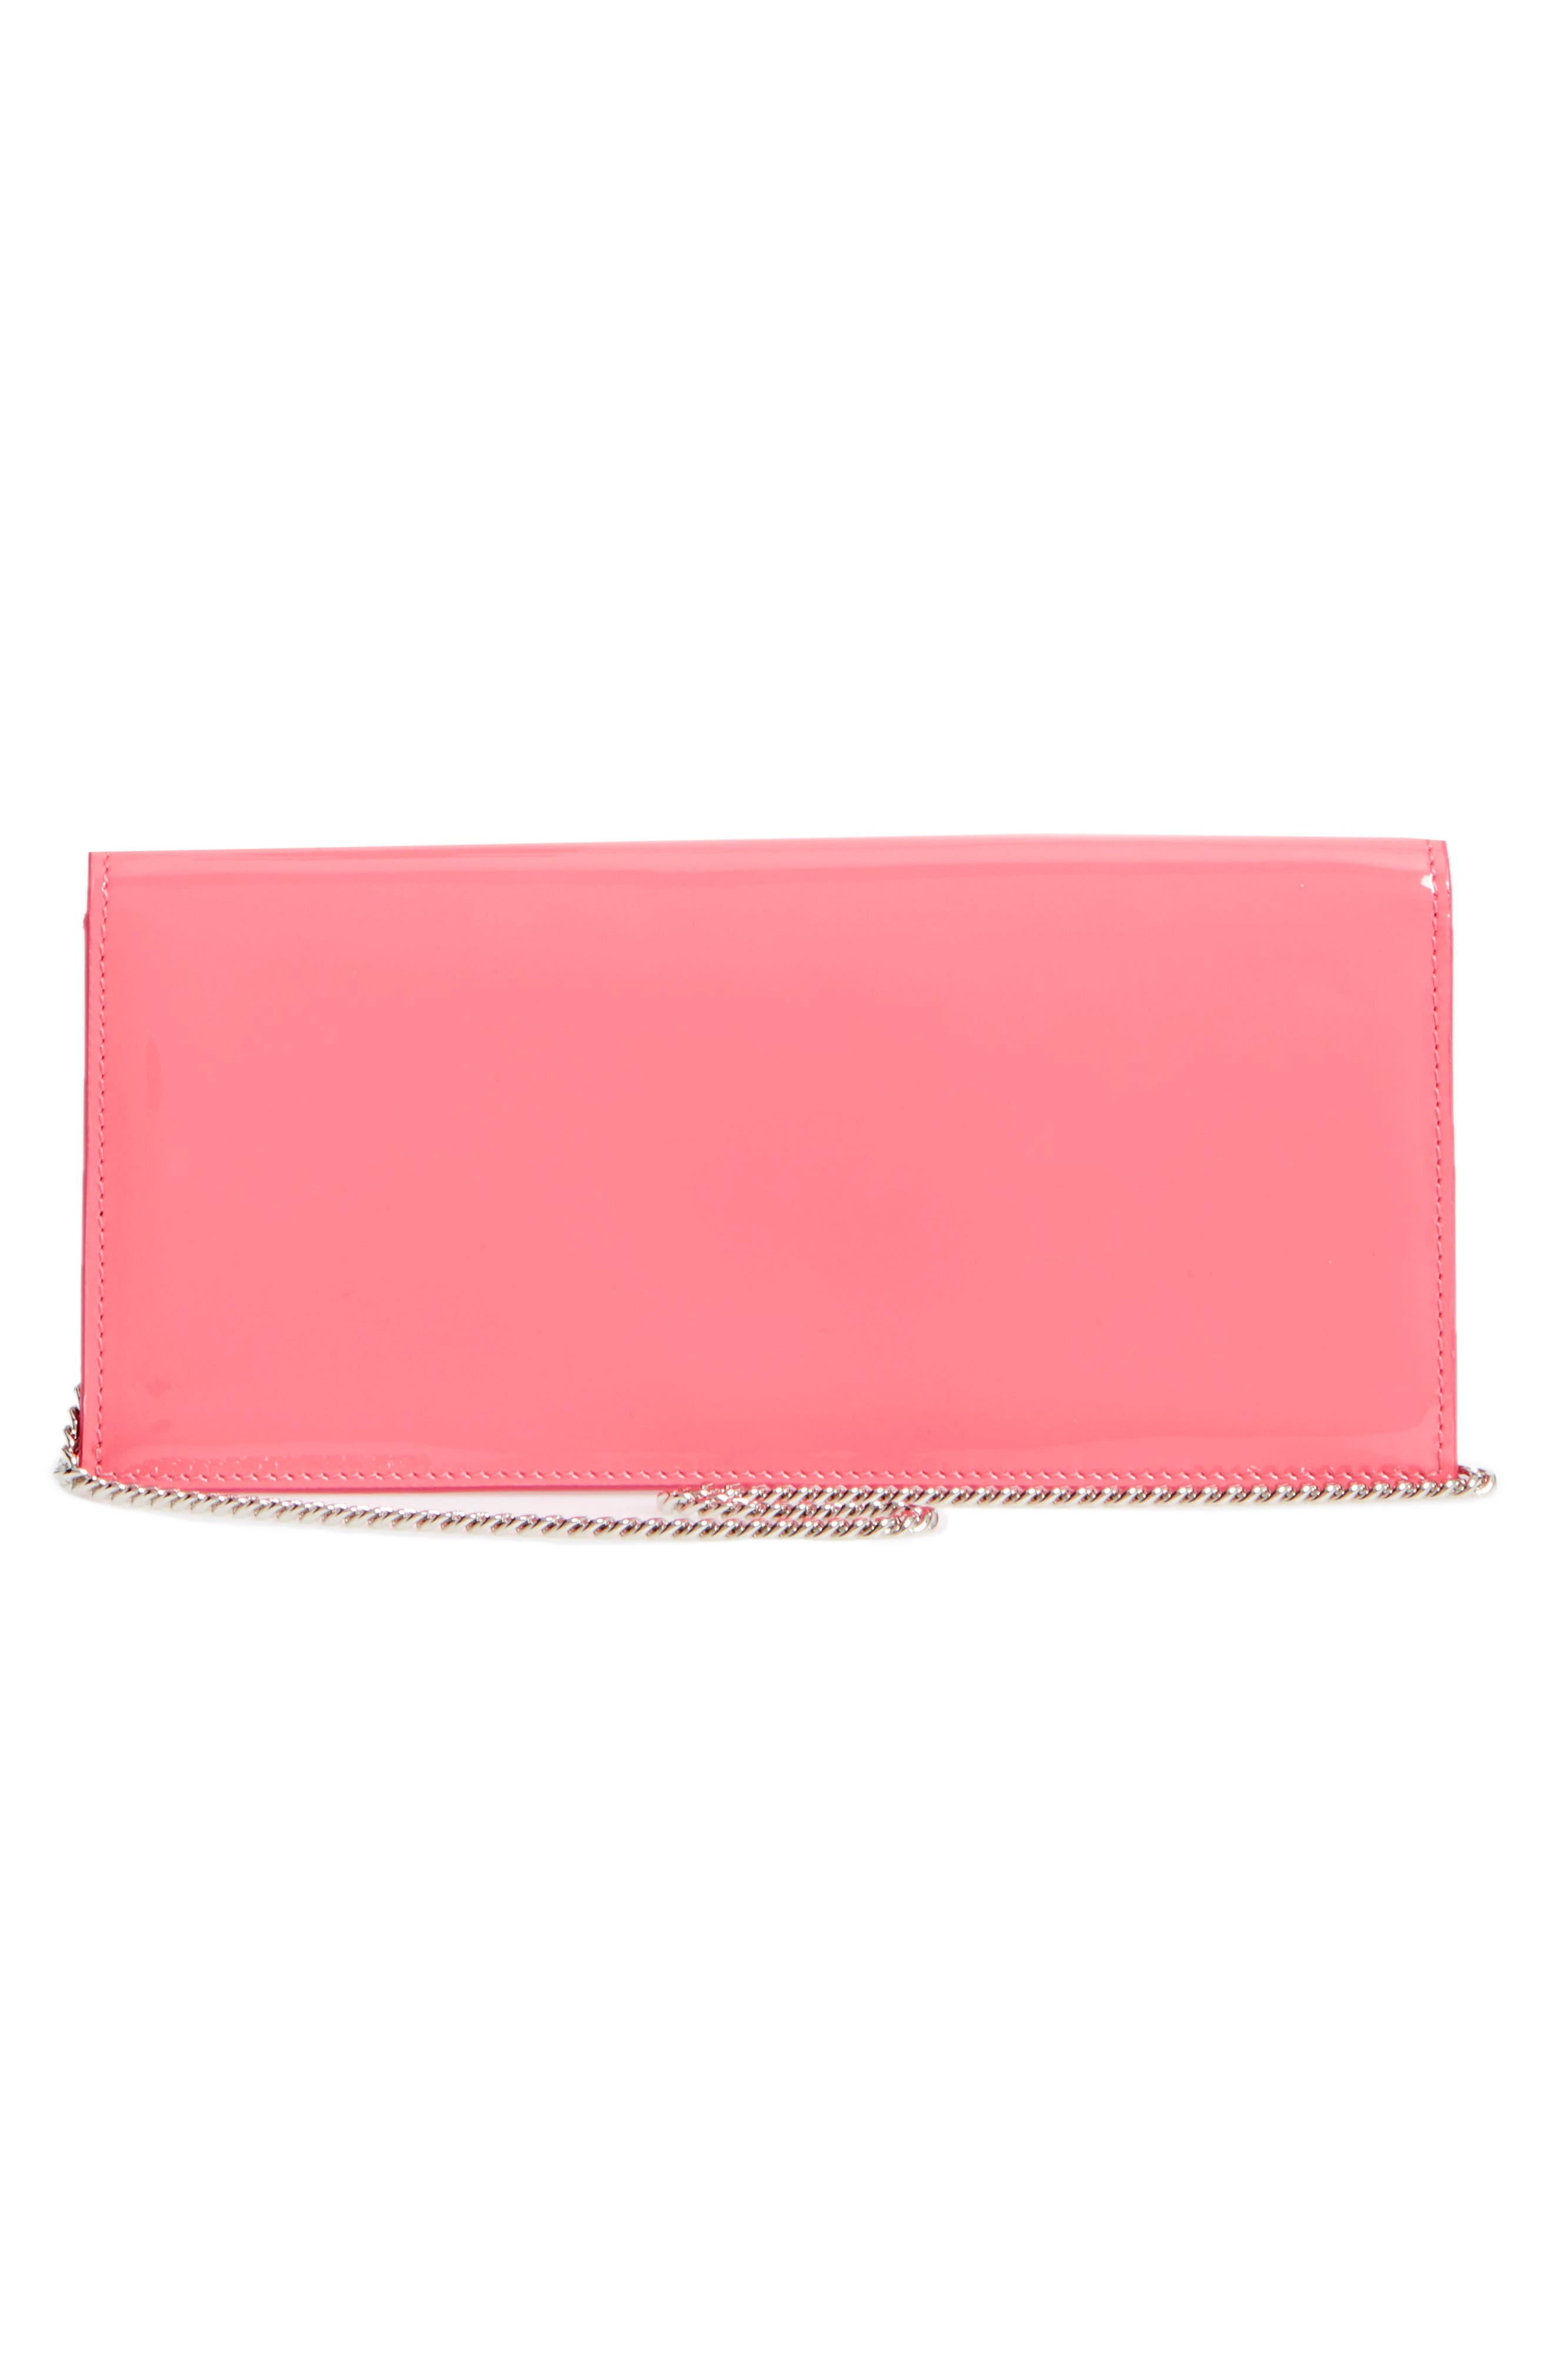 Fie Suede & Patent Leather Clutch,                             Alternate thumbnail 3, color,                             650